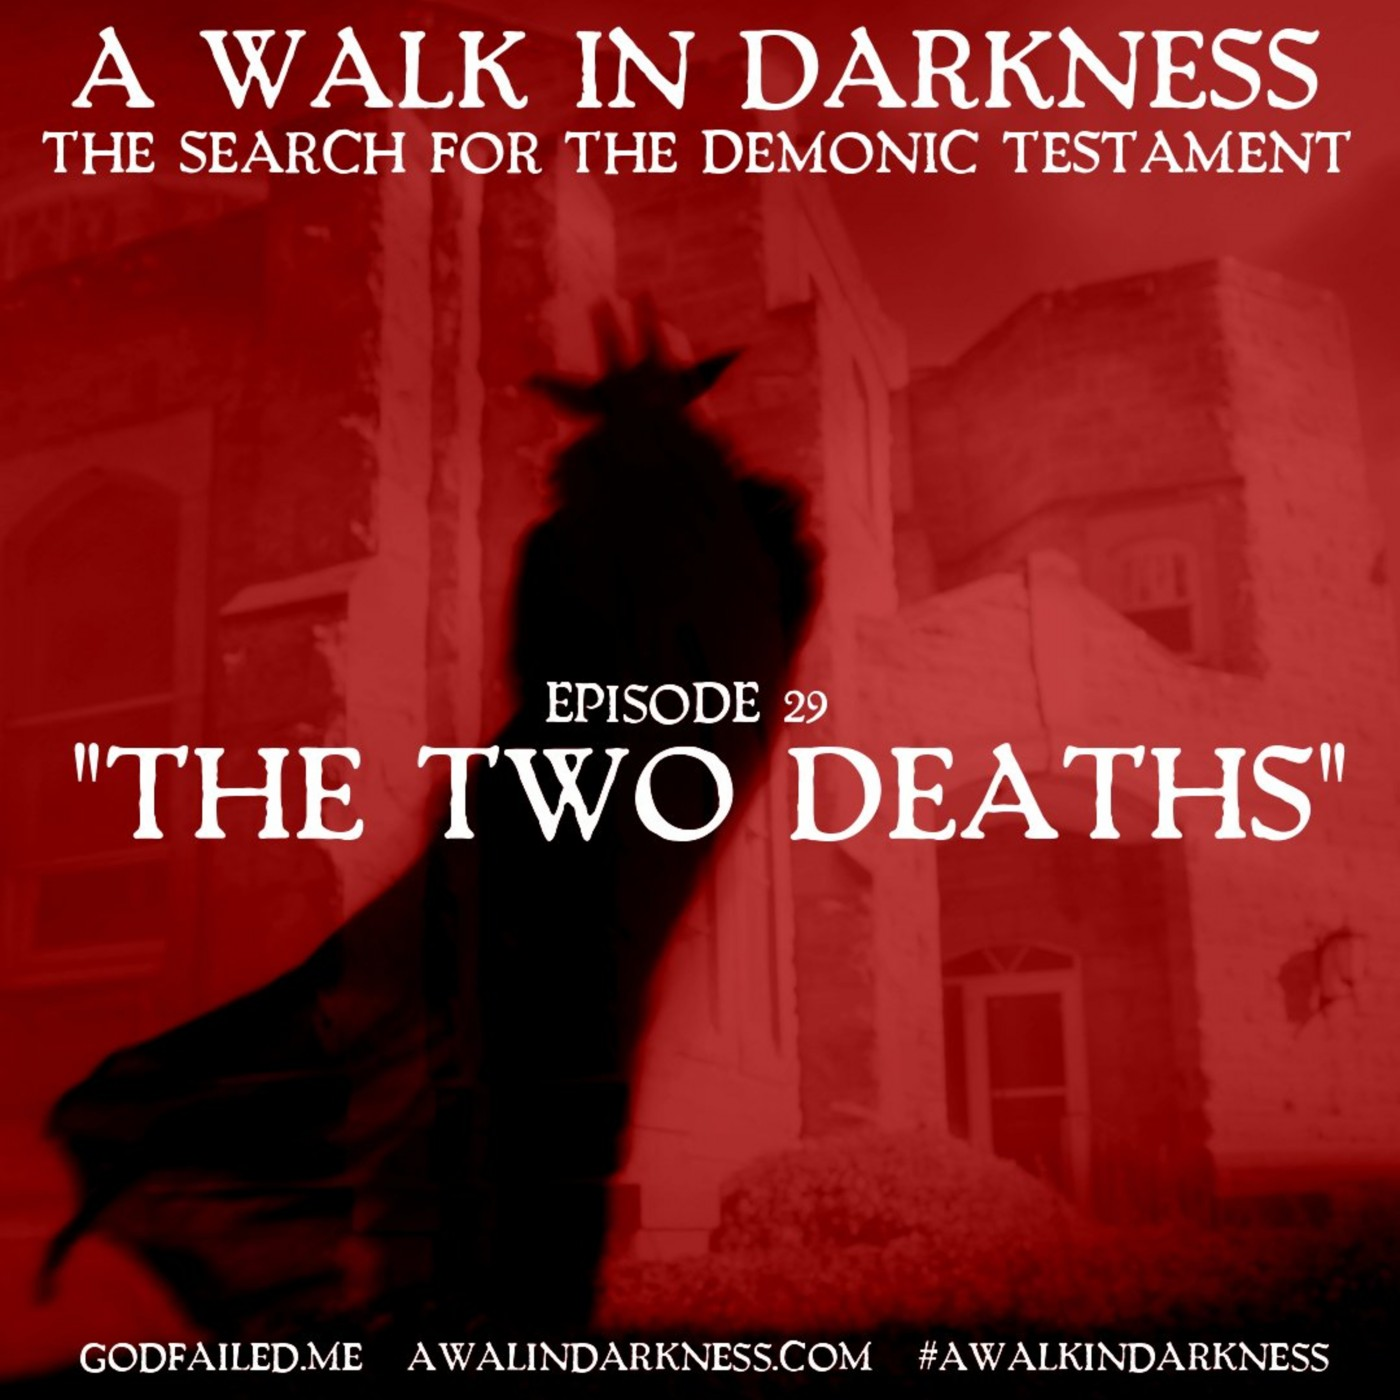 The Two Deaths (Episode 29)